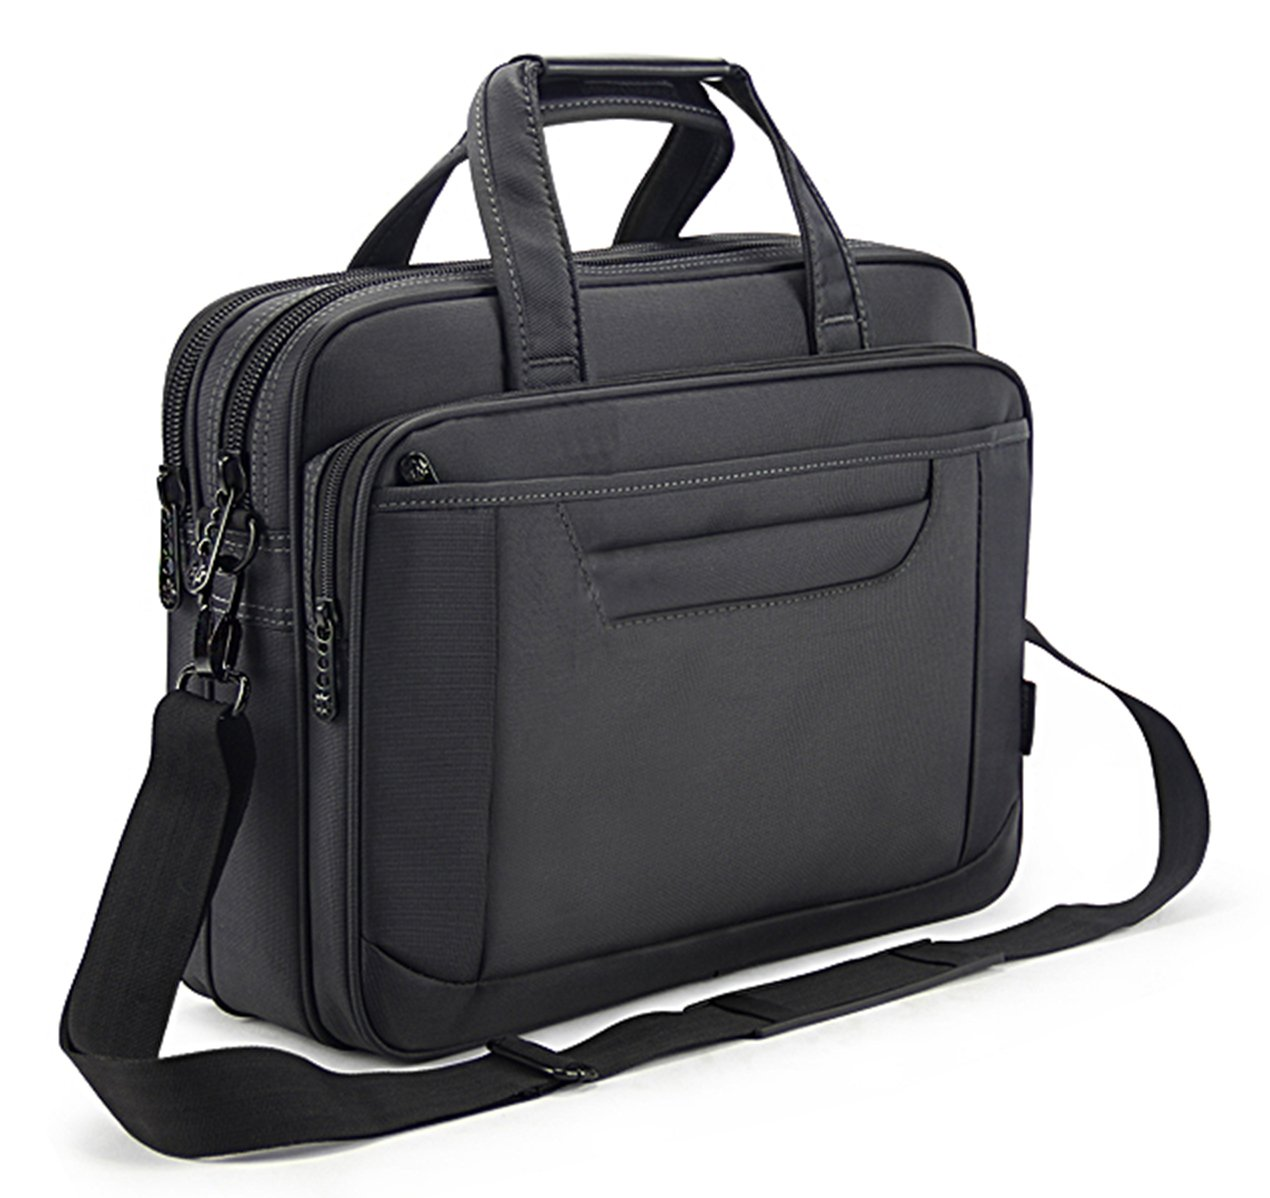 Briefcase Bag 15.6 Inch Laptop Messenger Bag Business Office Bag for Men Women, Waterproof Stylish Nylon Multi-functional Shoulder Bag fit for Computer Notebook Macbook Hp Dell Lenovo Asus Apple